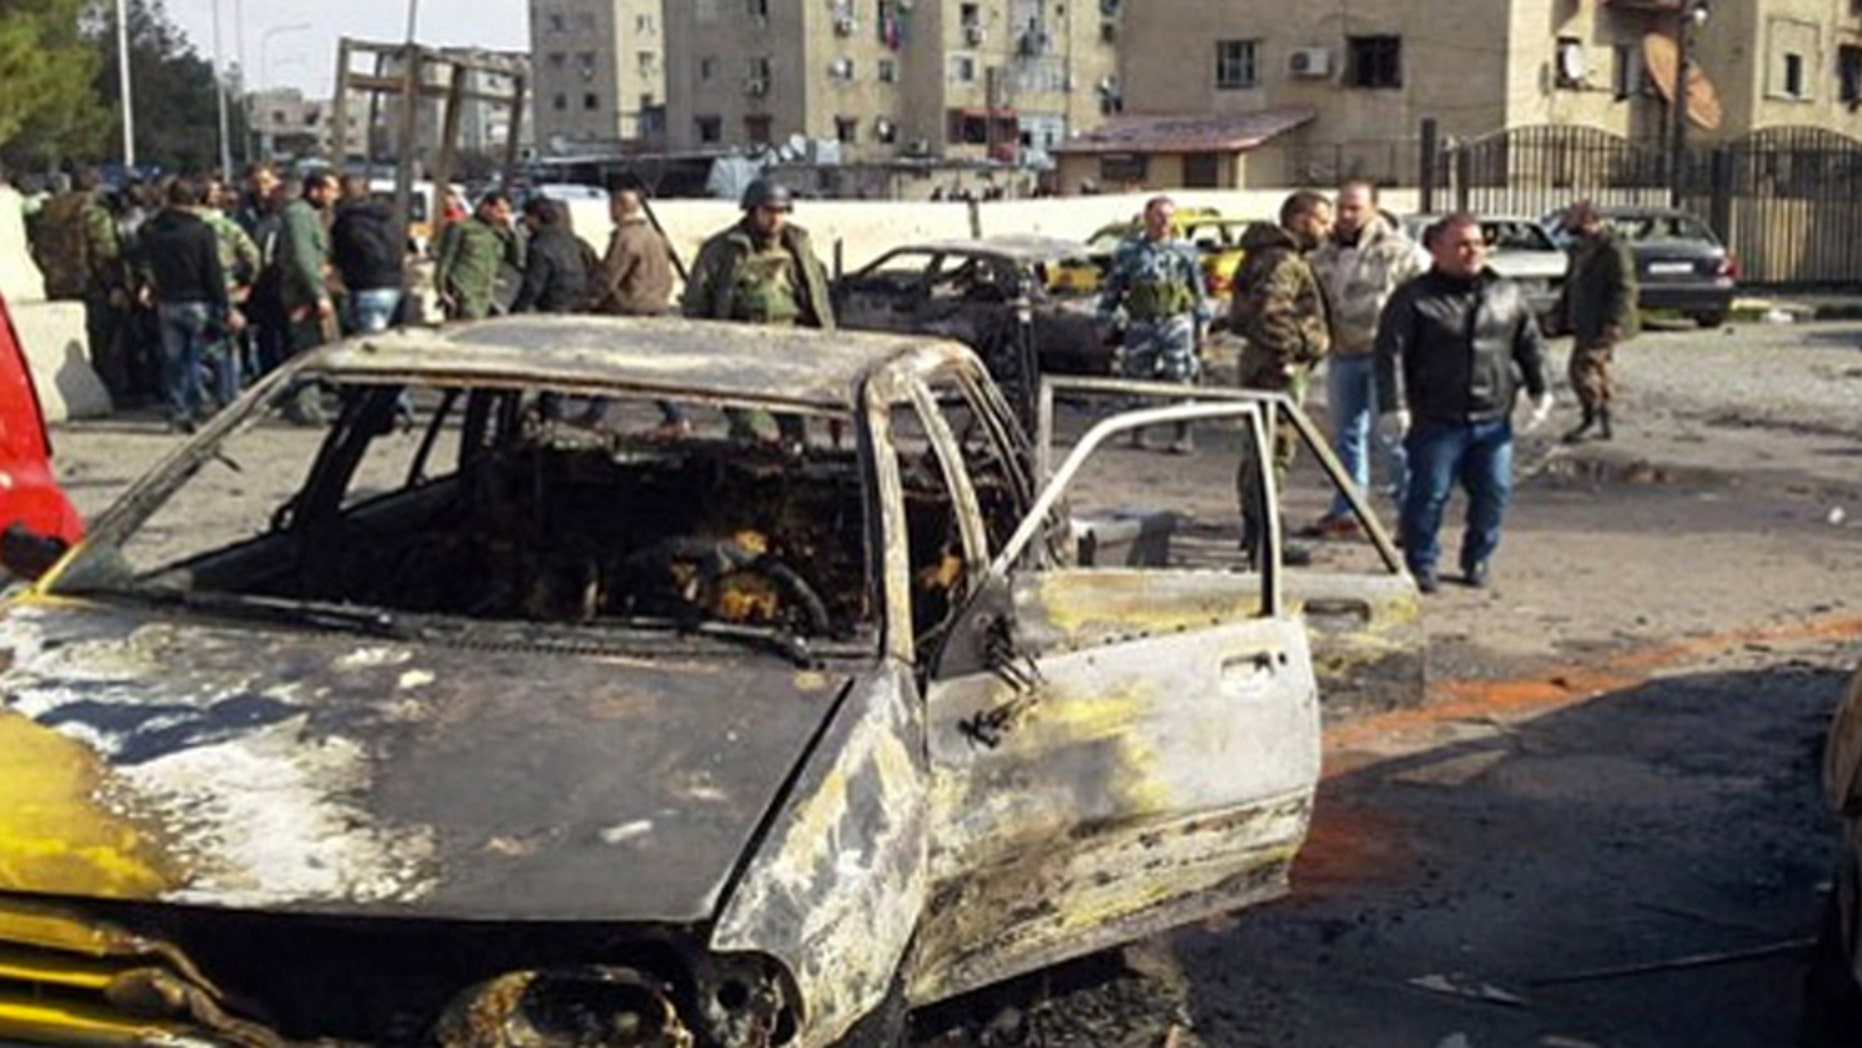 Feb. 9, 2016: In this photo released by the Syrian official news agency SANA, soldiers and plainclothes policemen gather at the scene of an explosion that killed tens of people and wounded others in the Syrian capital of Damascus.